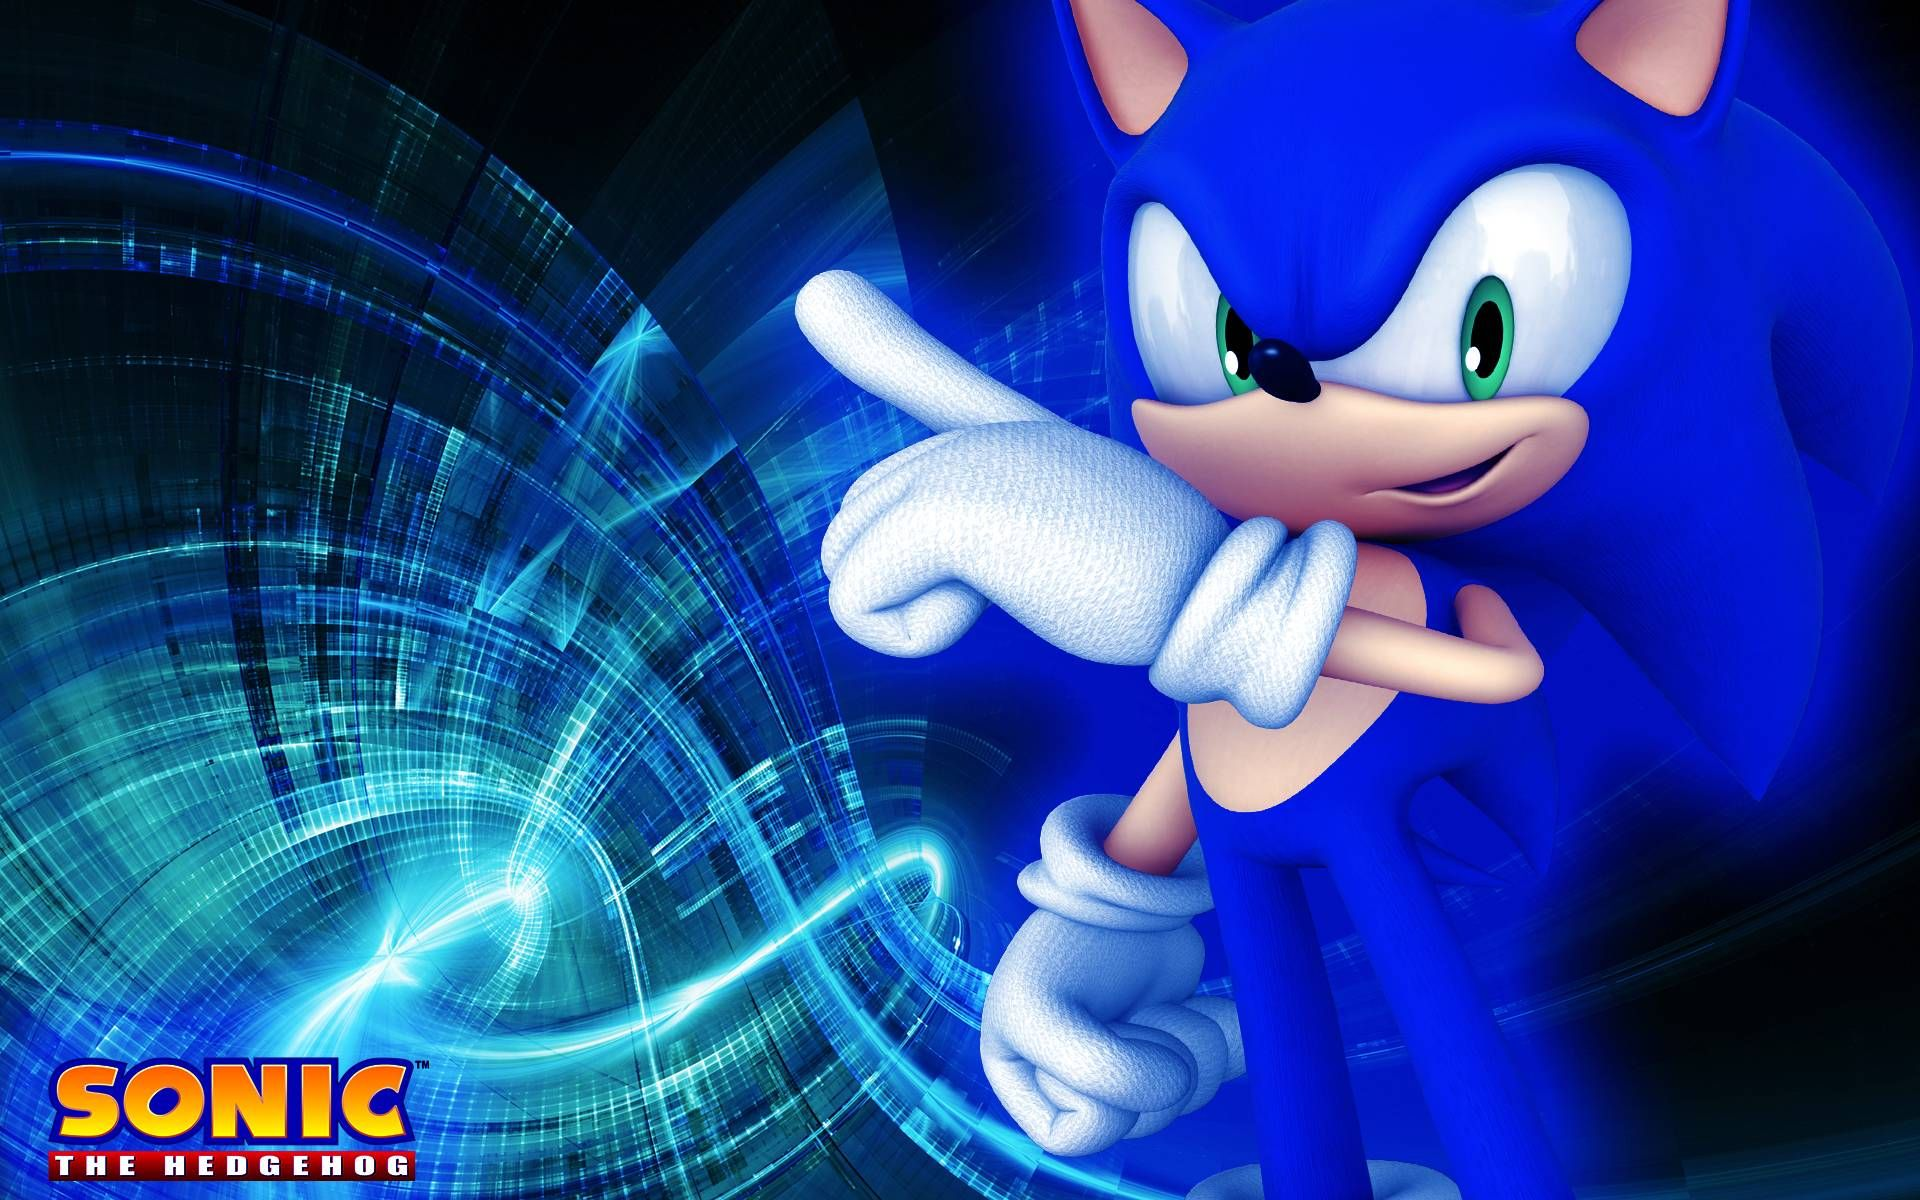 Sonic The Hedgehog Wallpapers Full Hd Wallpaper Search Sonic